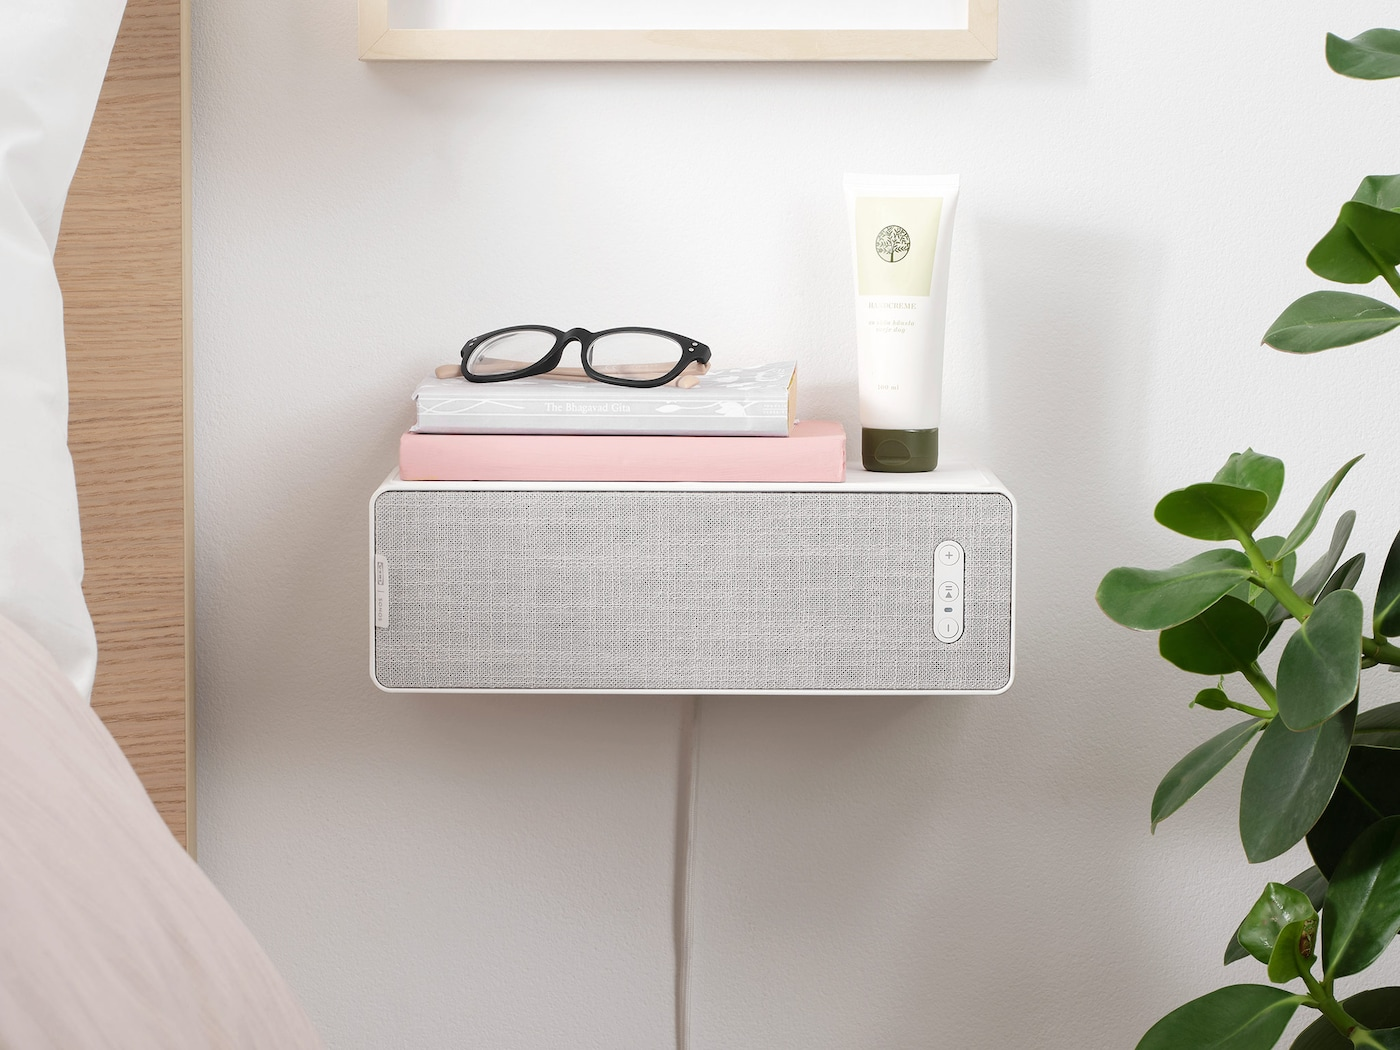 SYMFONISK bookshelf WiFi speaker wallmounted as a bedside table next to a bed.